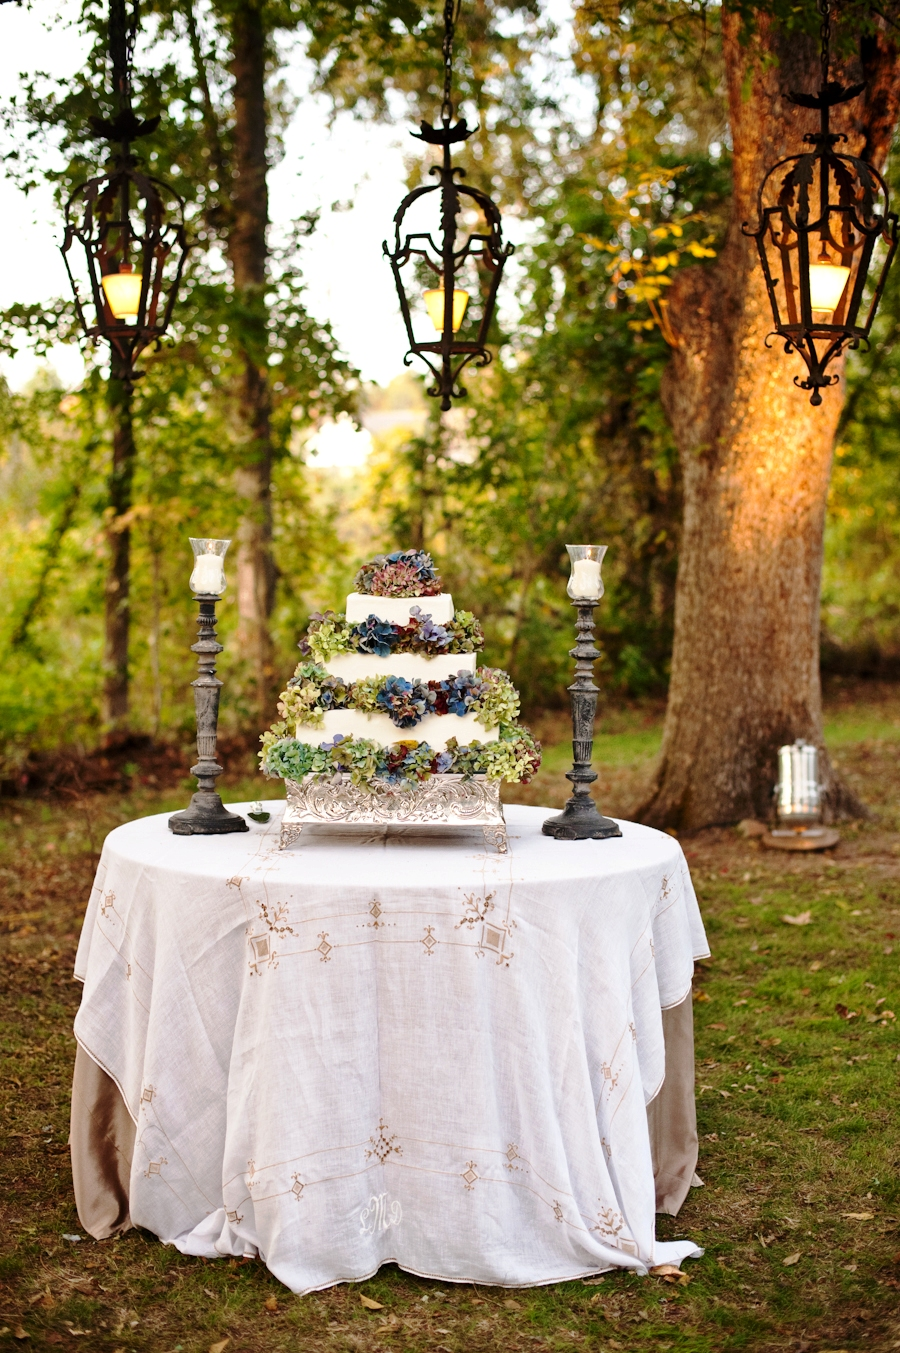 Outdoor Wedding Cake Table Decorations With Candle